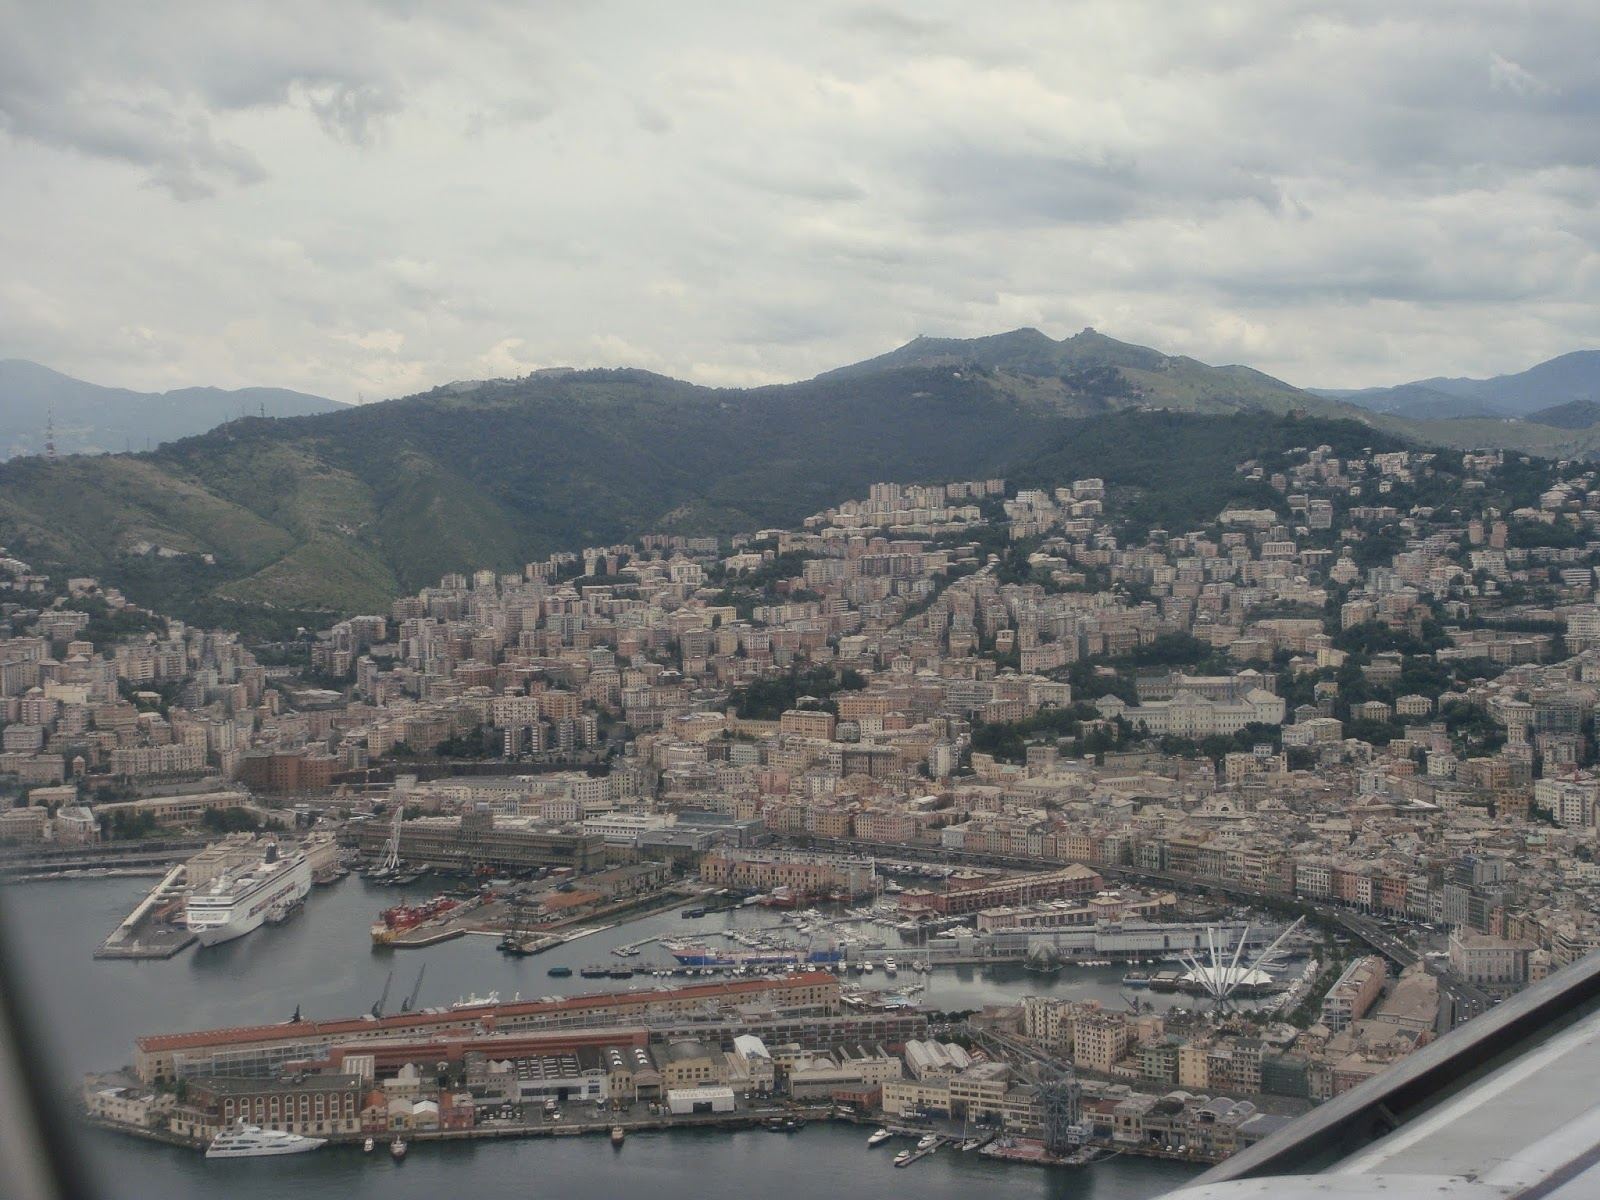 Genova - Italian city between coast and mountains